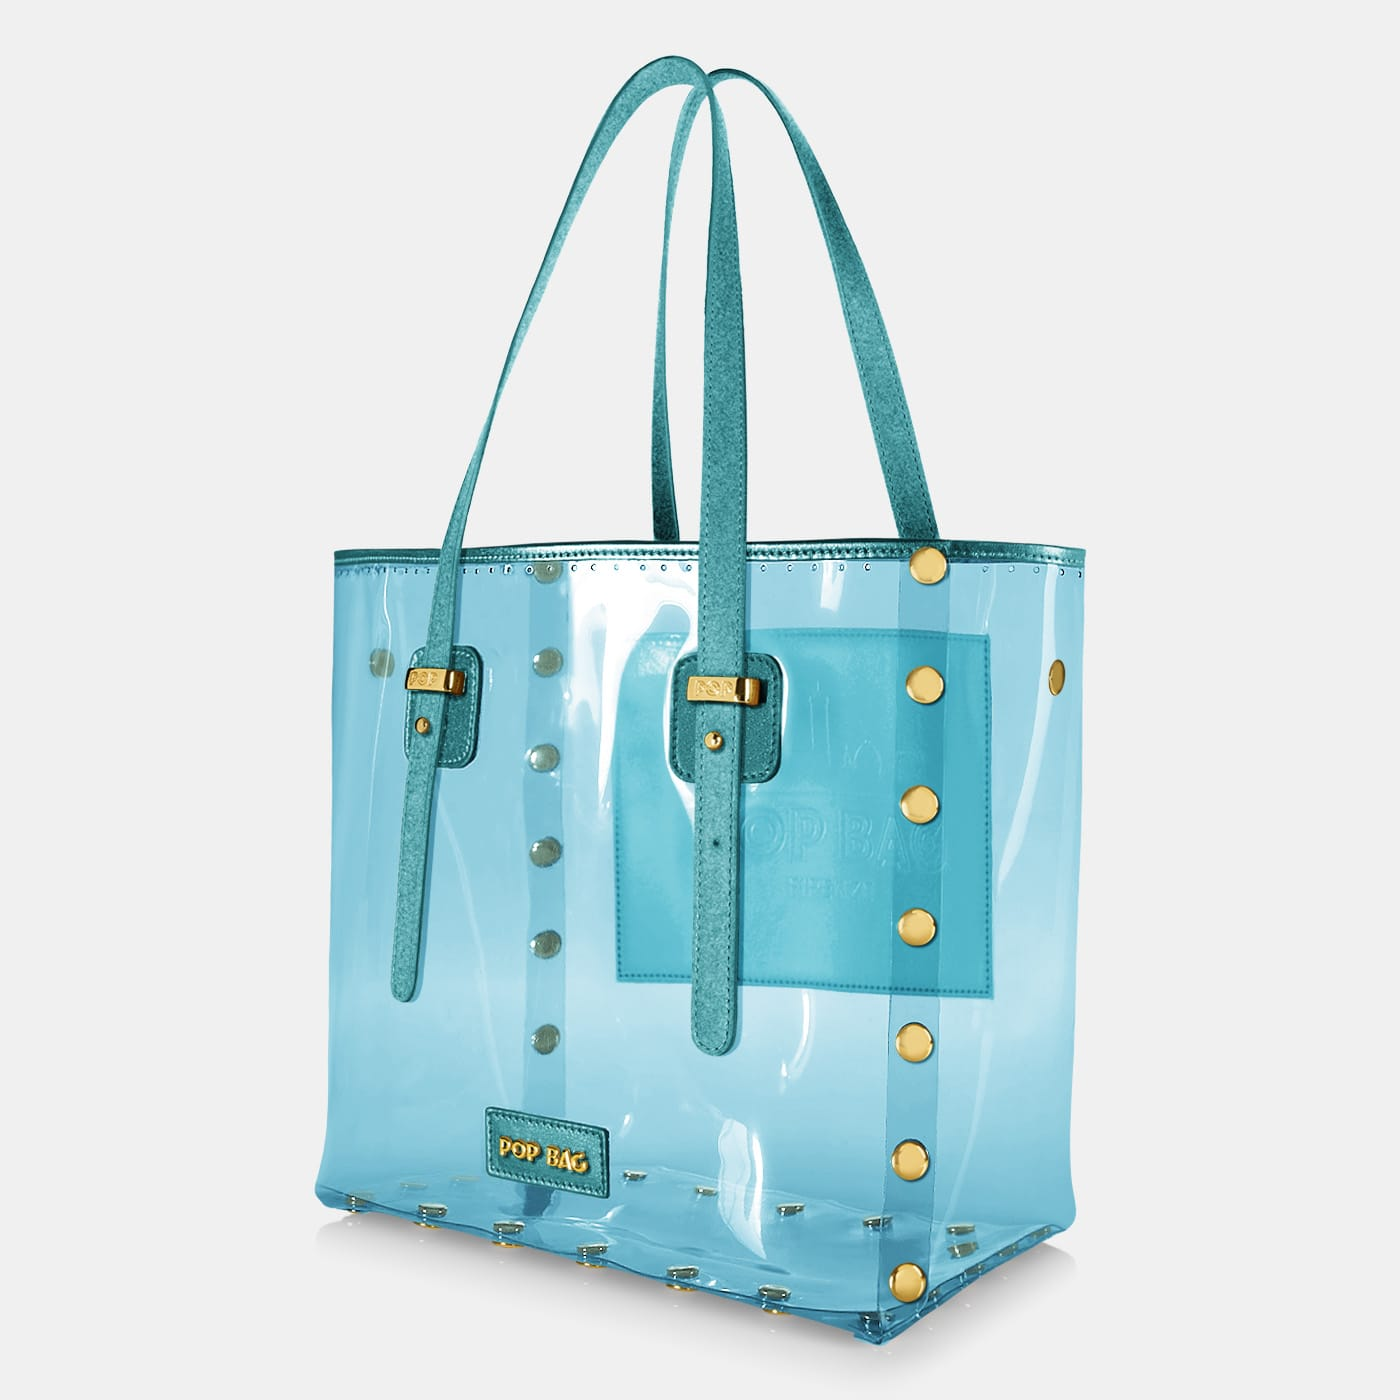 Pop Crystal Bag - Light Blue - Large - Side View